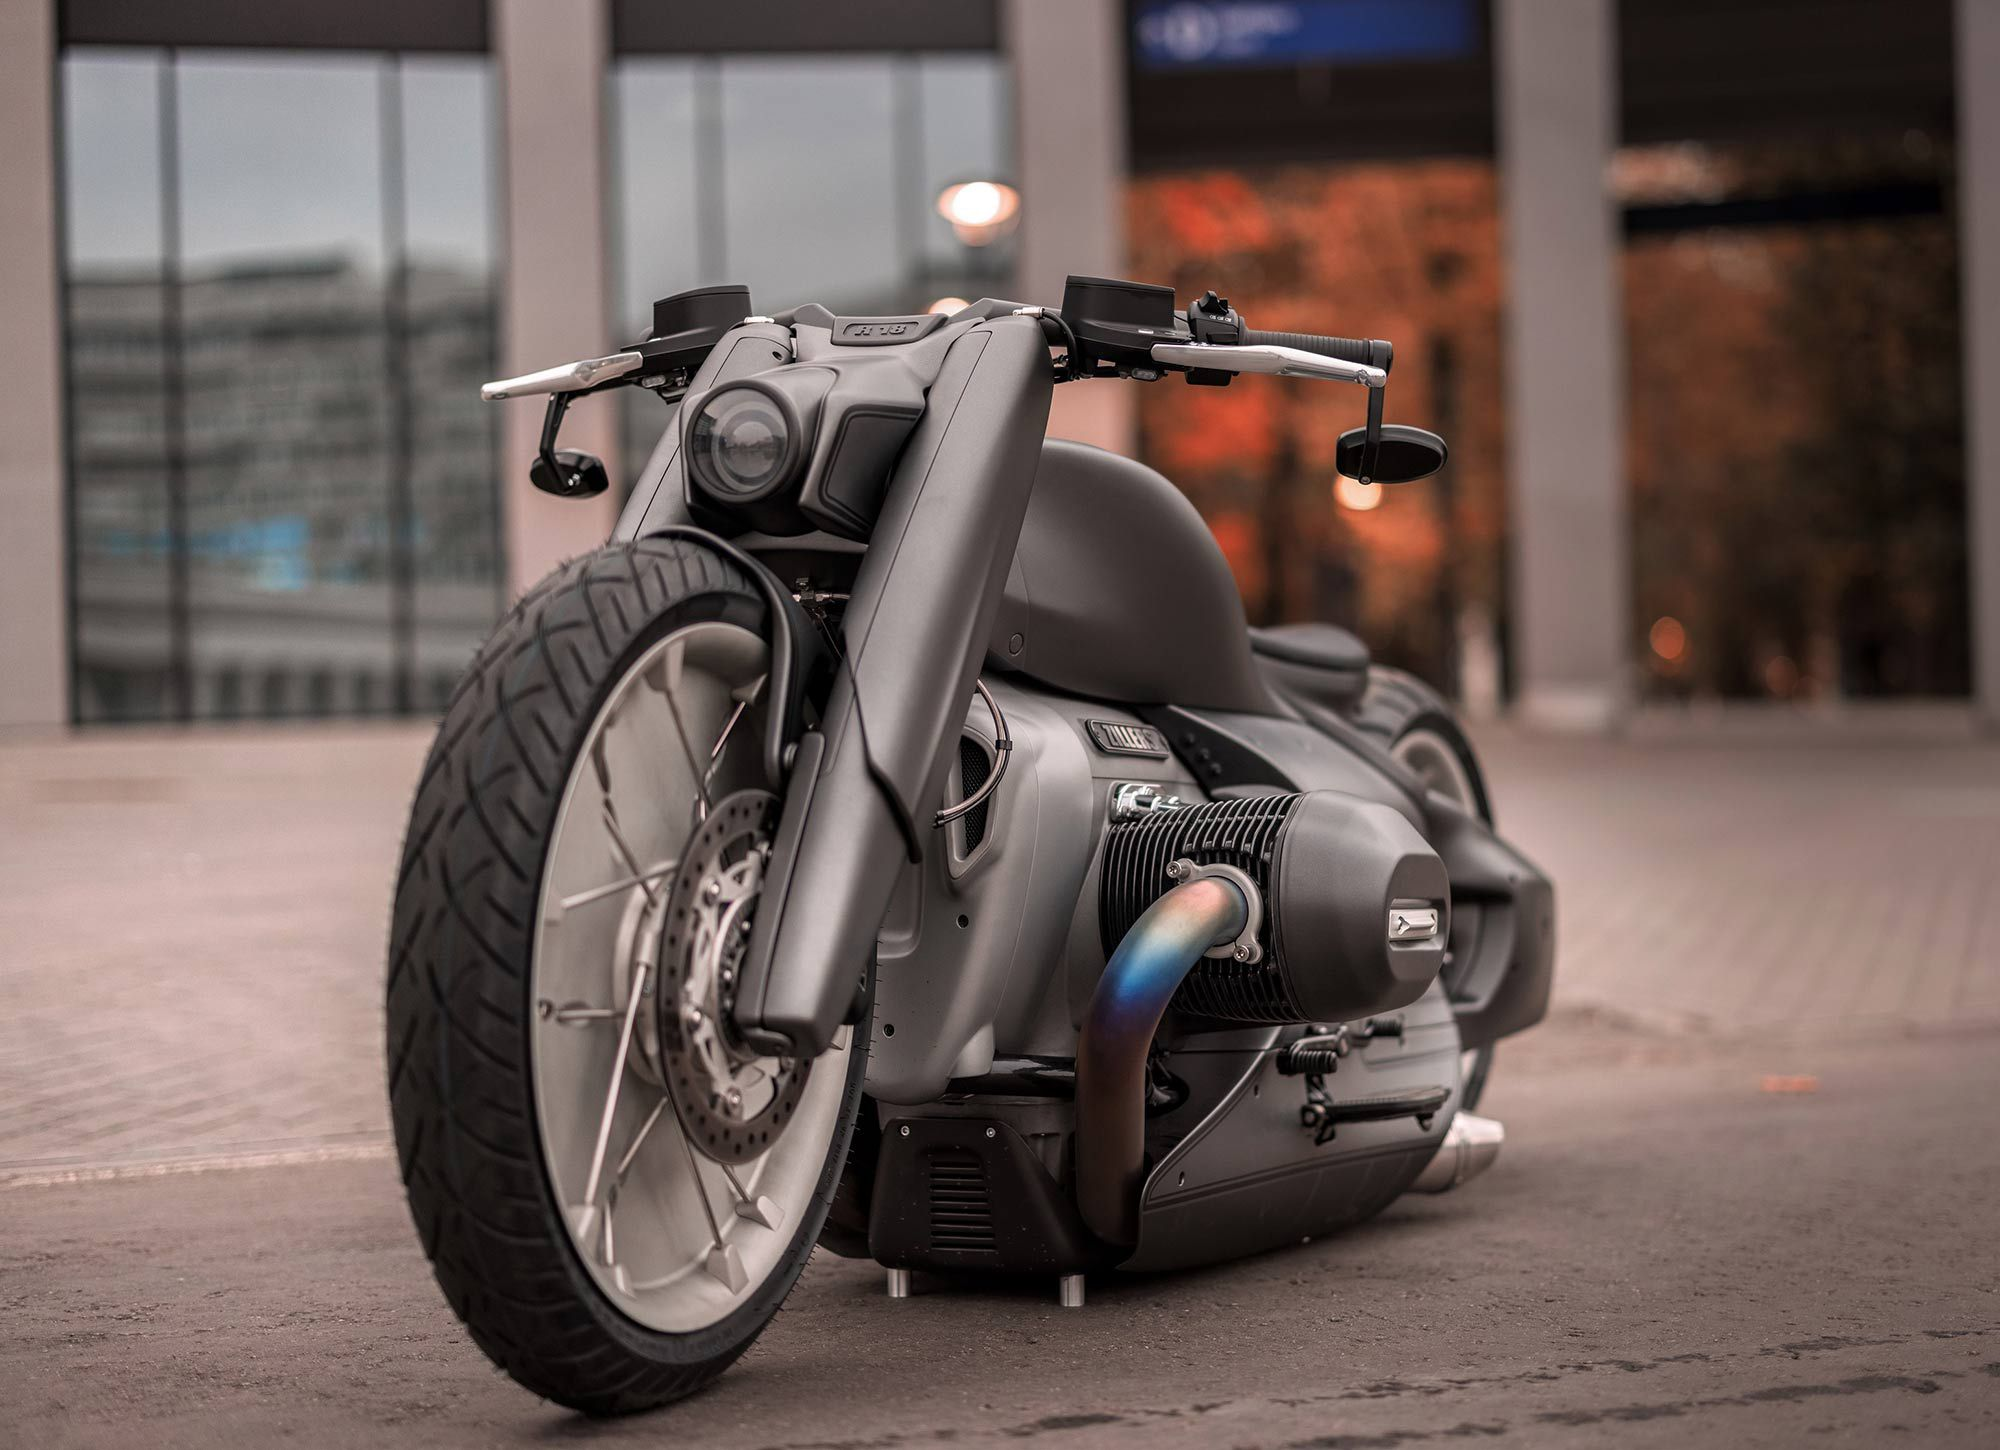 The Zillers-developed air suspension means the bike rests on spikes hidden at the bottom rather than a traditional sidestand. Carbon fiber parts include a custom stretched tank and chunky fork covers.